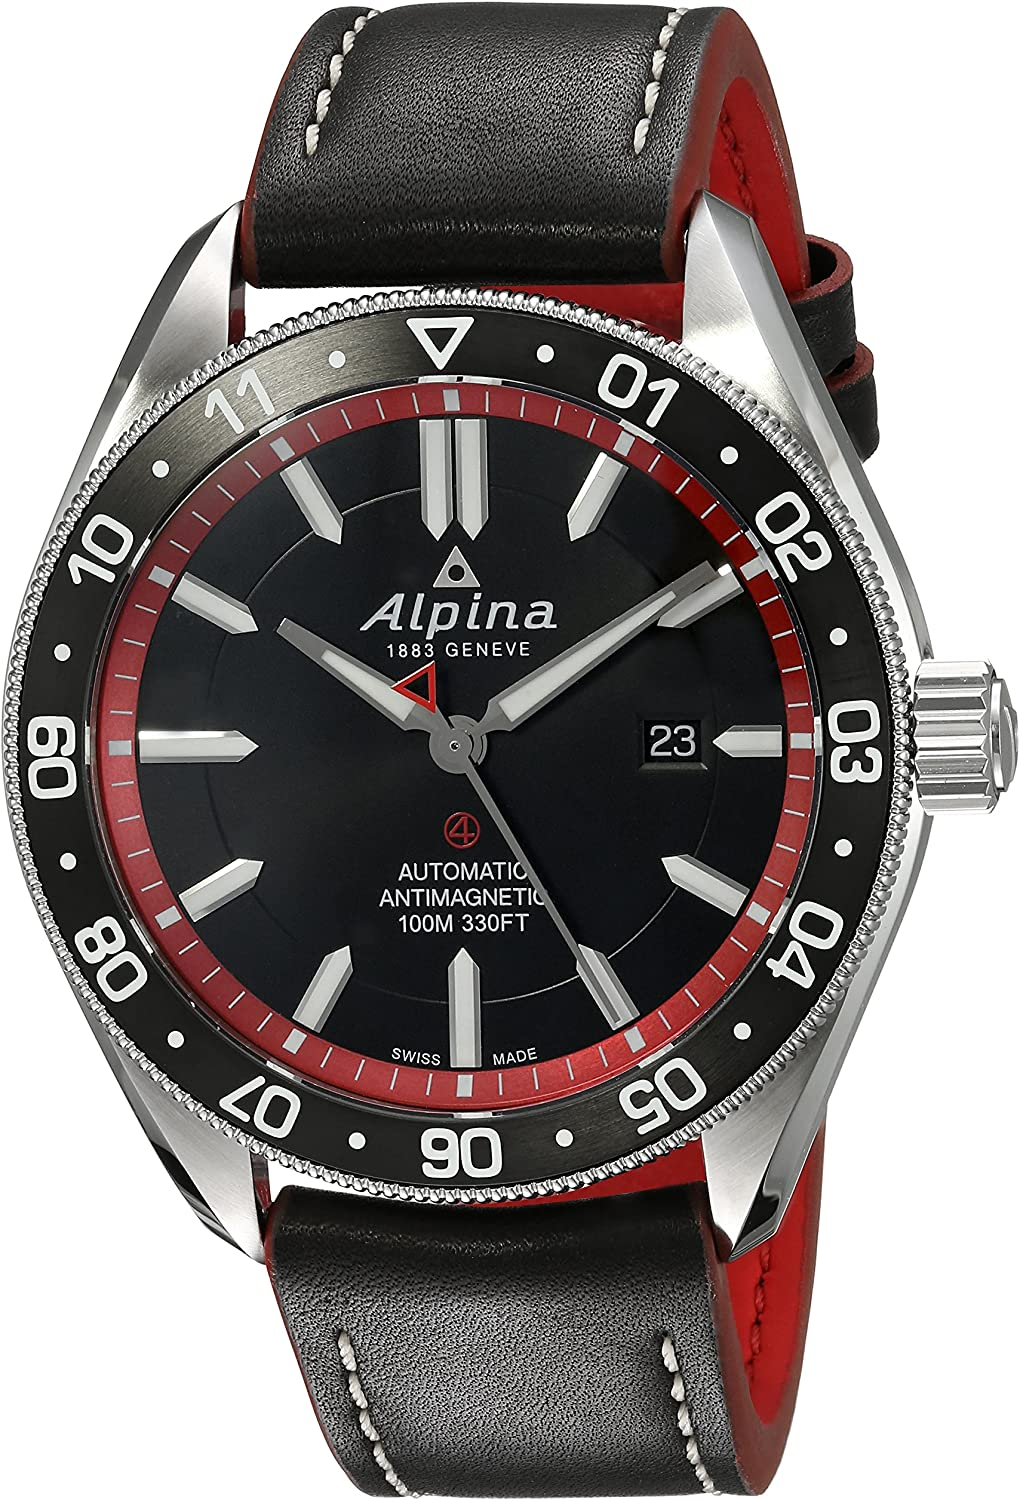 Alpina Men's Alpiner 4 Stainless Steel Swiss-Automatic Watch with Leather Strap, Black, 22 (Model: AL-525BR5AQ6)